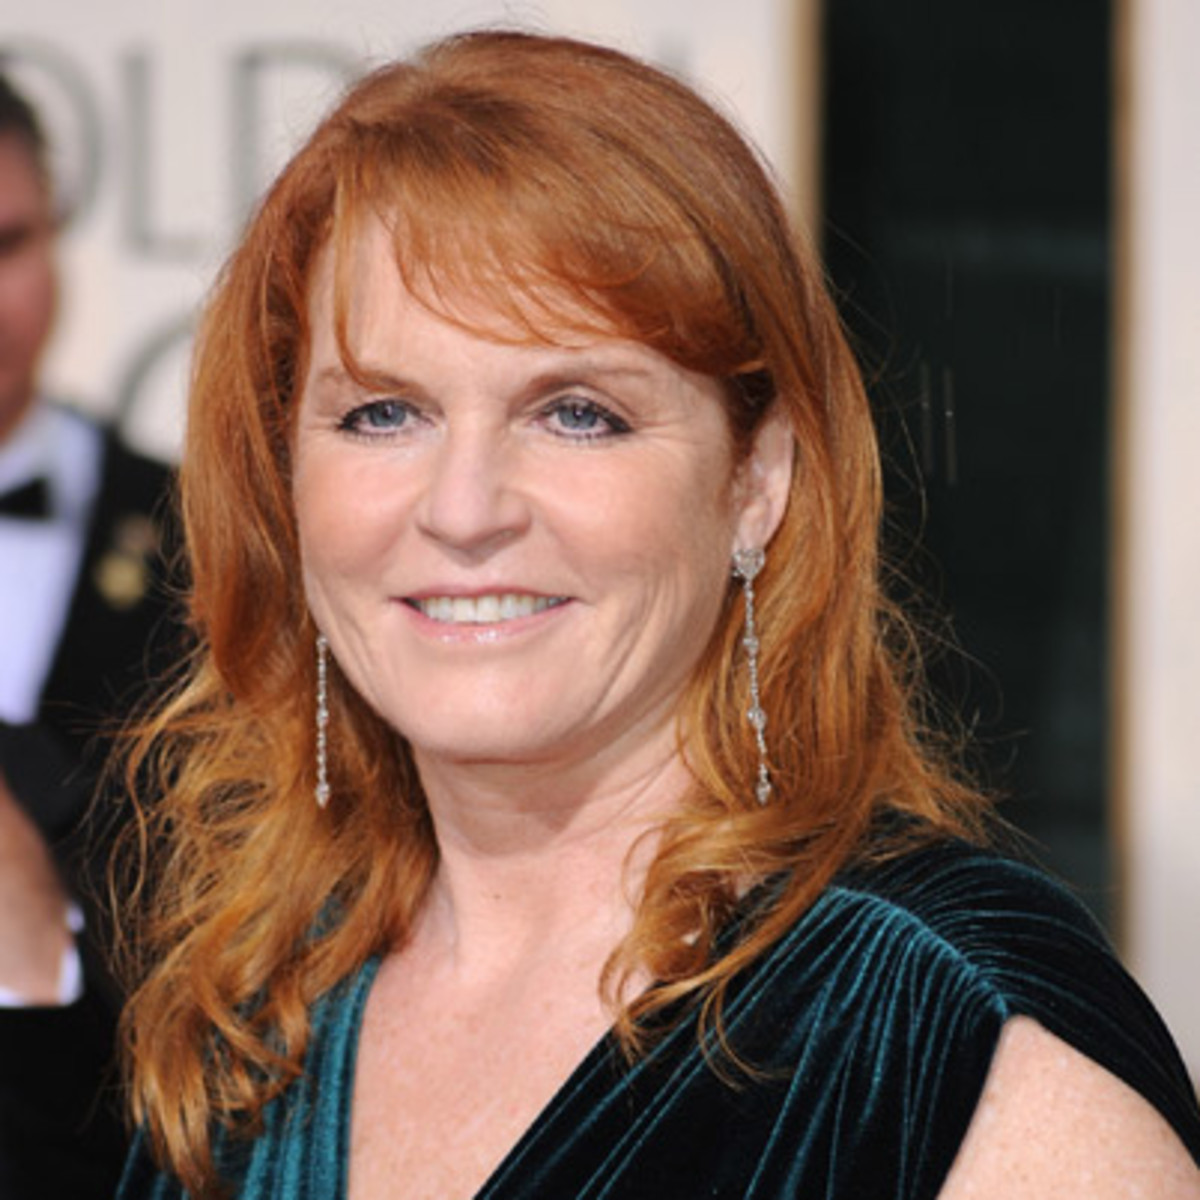 sarah ferguson actress